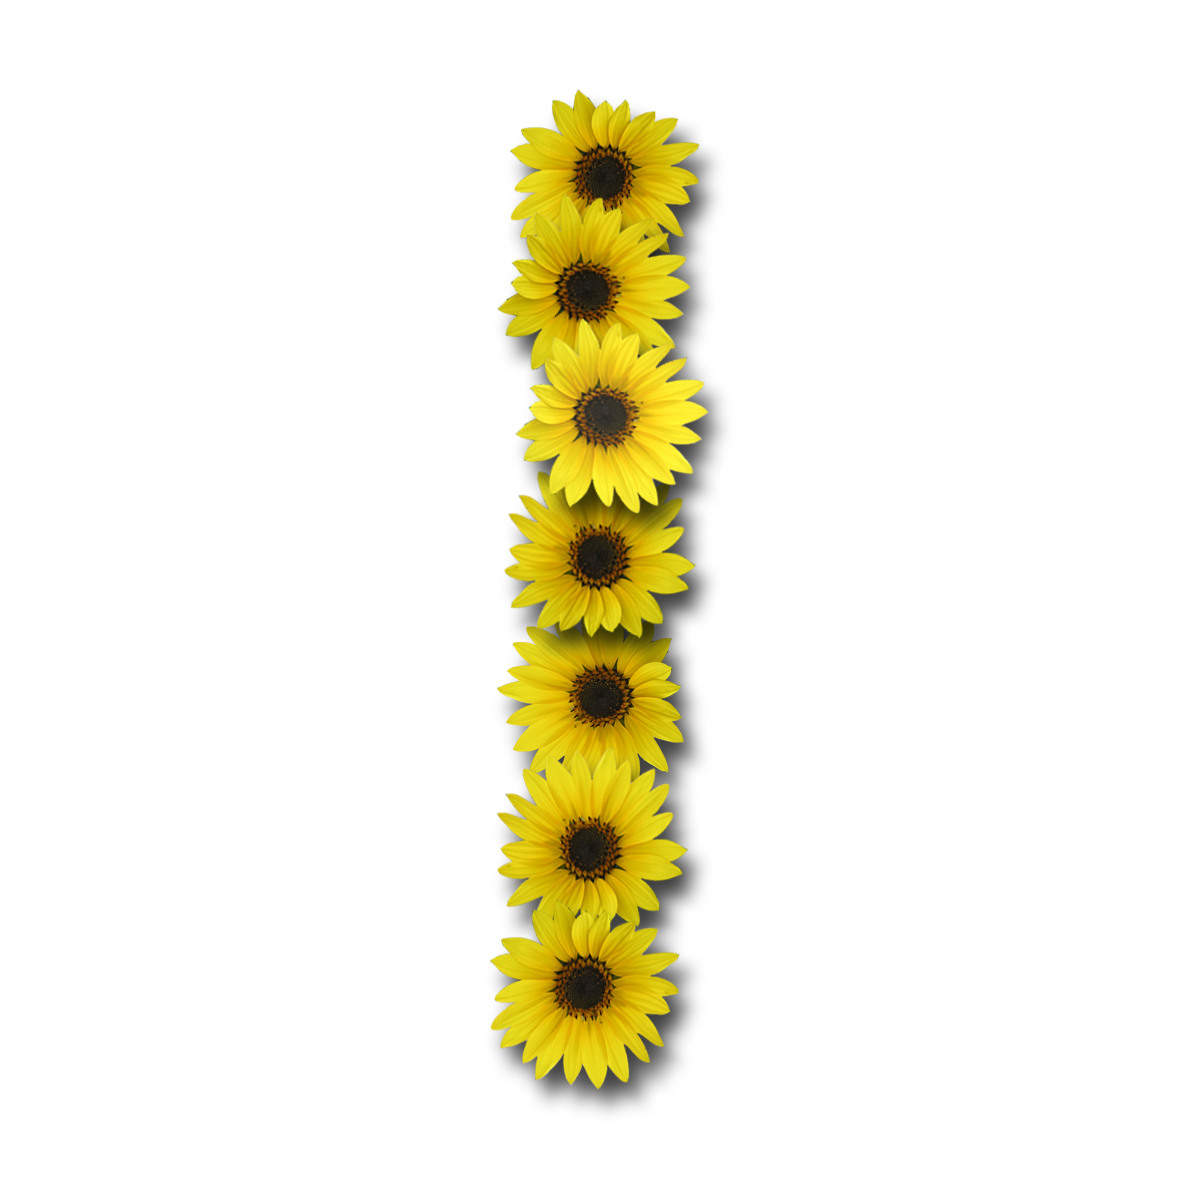 sunflower alphabet png